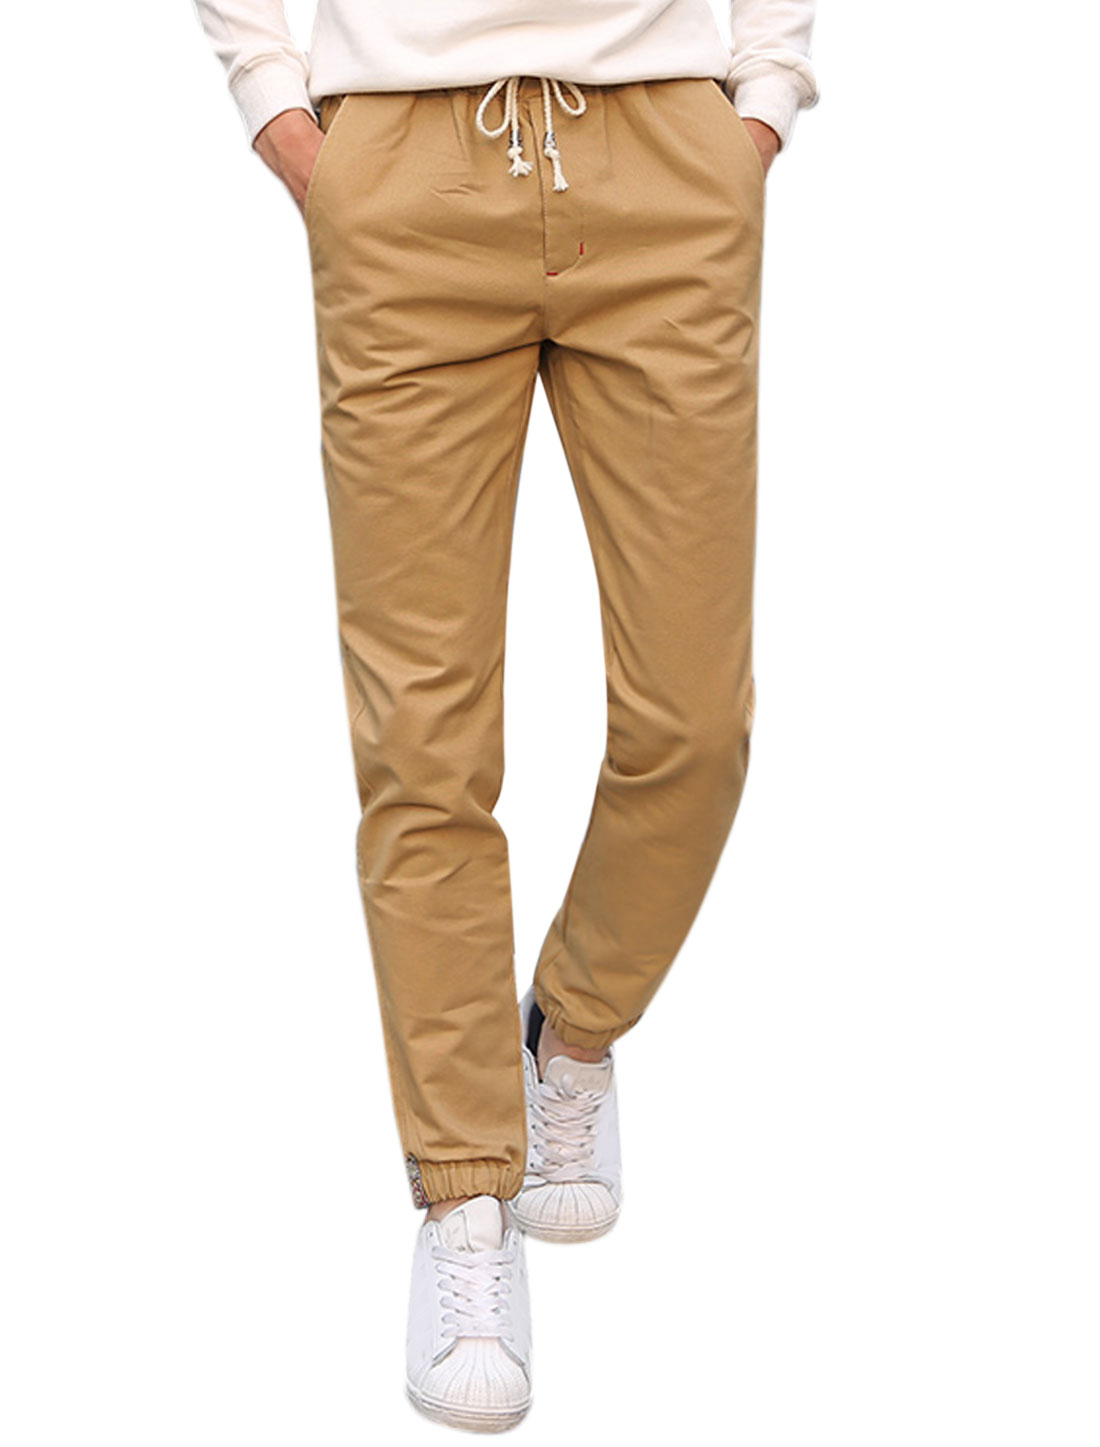 Man Side Pockets Slim Fit Straight Leg Elastic Drawstring Pants Brown W32